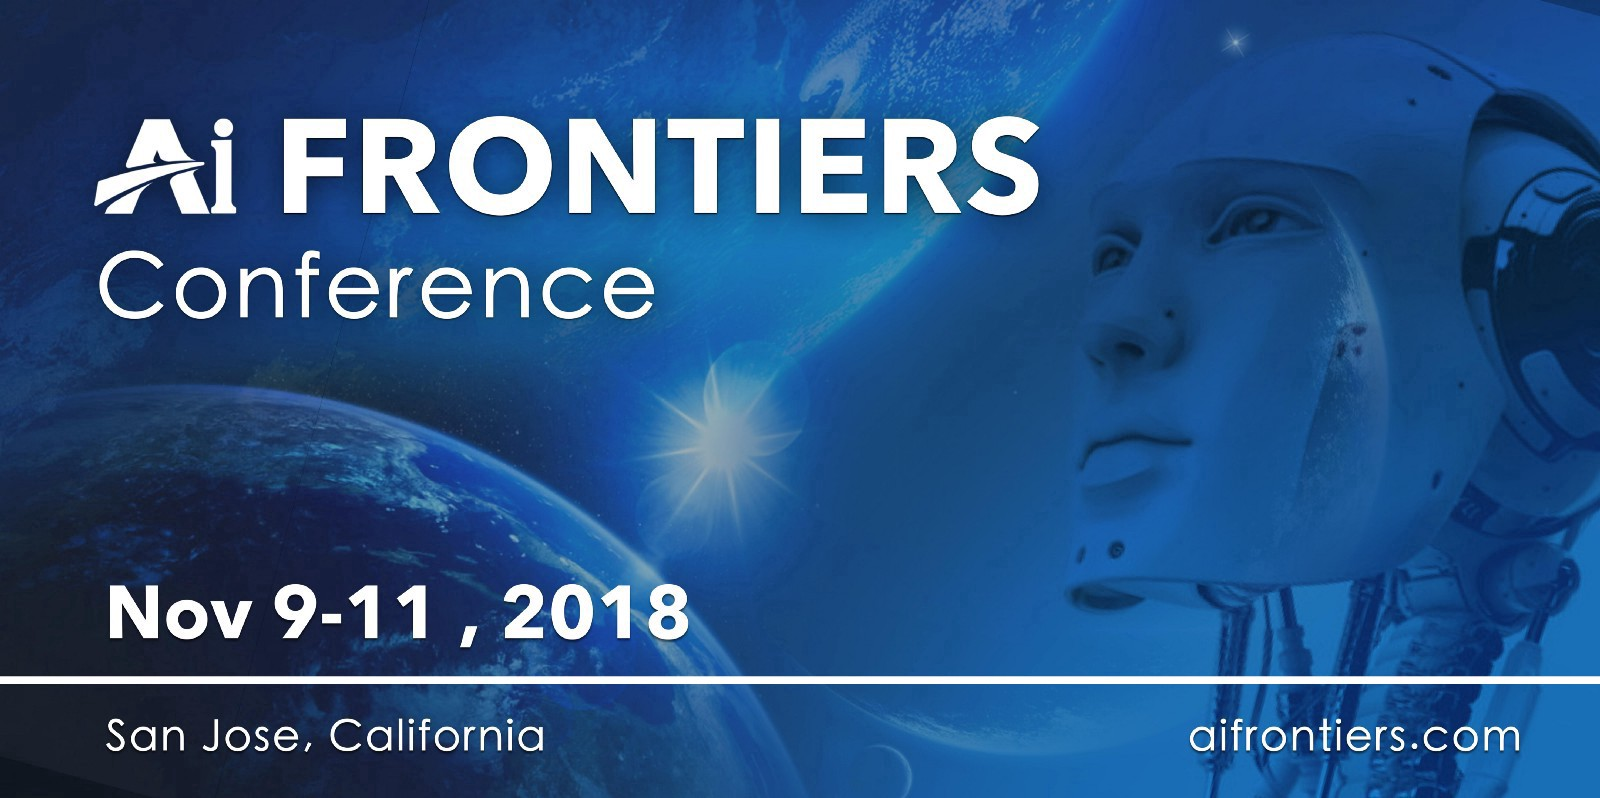 Google to Offer Tensorflow Training at AI Frontiers